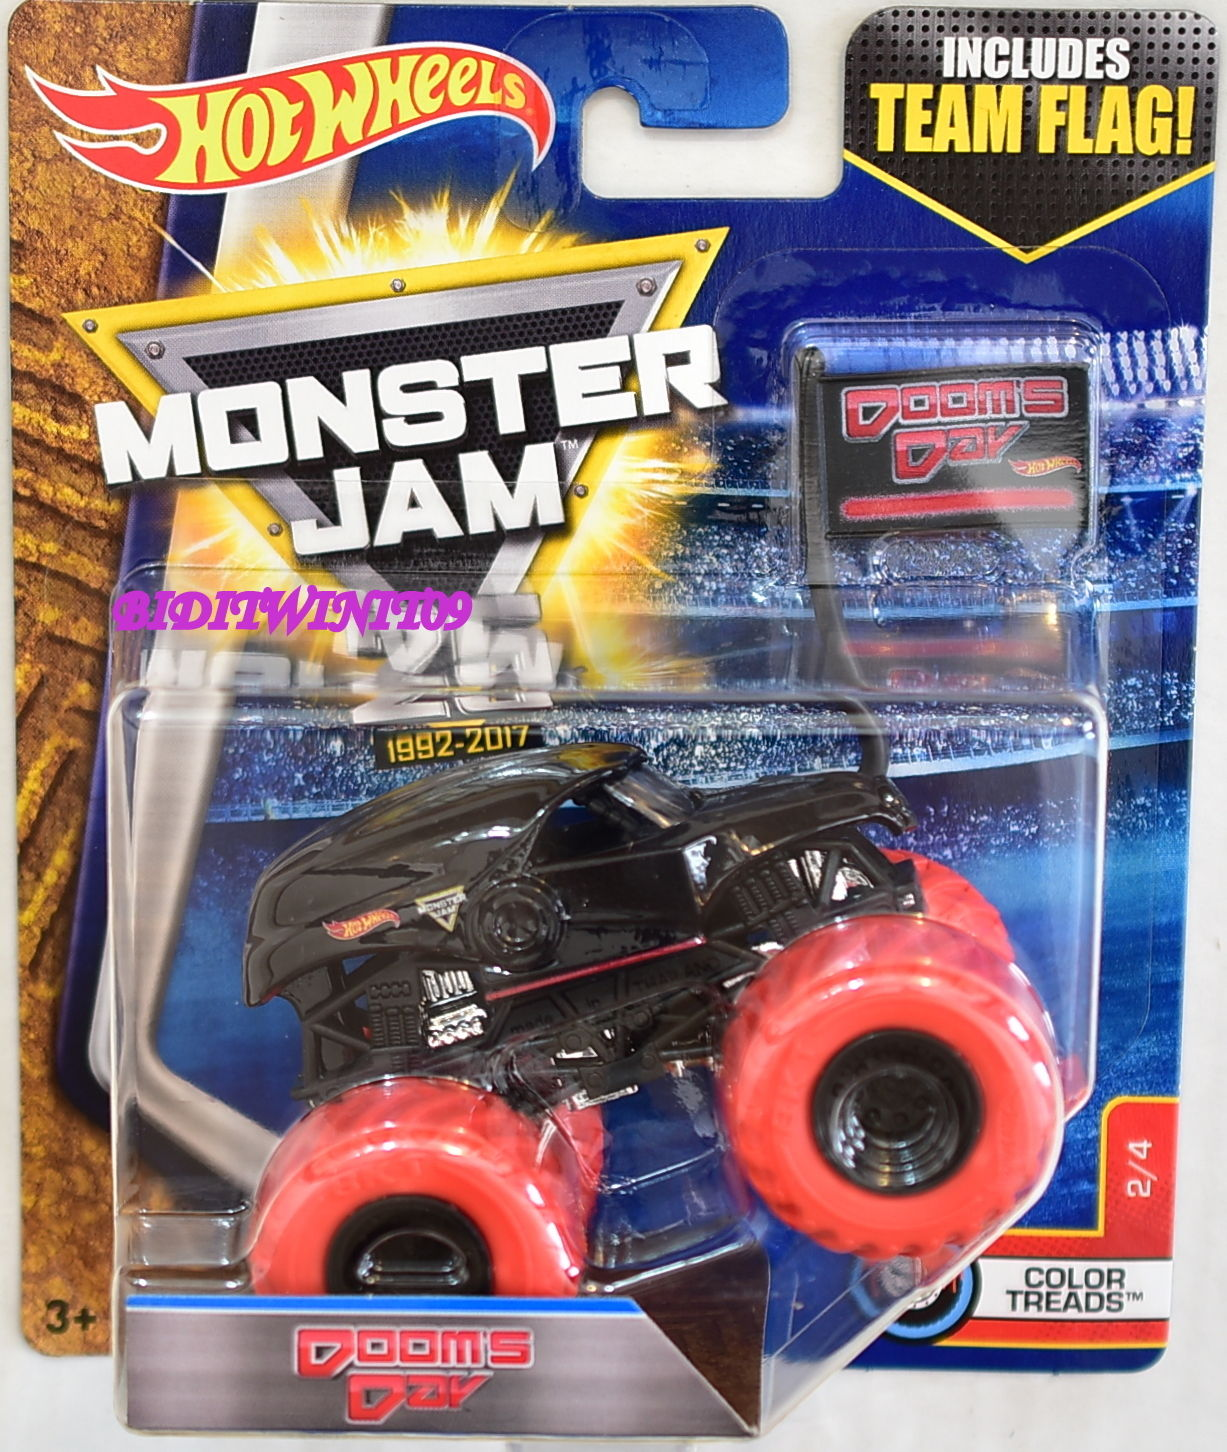 HOT WHEELS 2017 MONSTER JAM INCLUDES TEAM FLAG DOOMS DAY COLOR TREADS #2/4